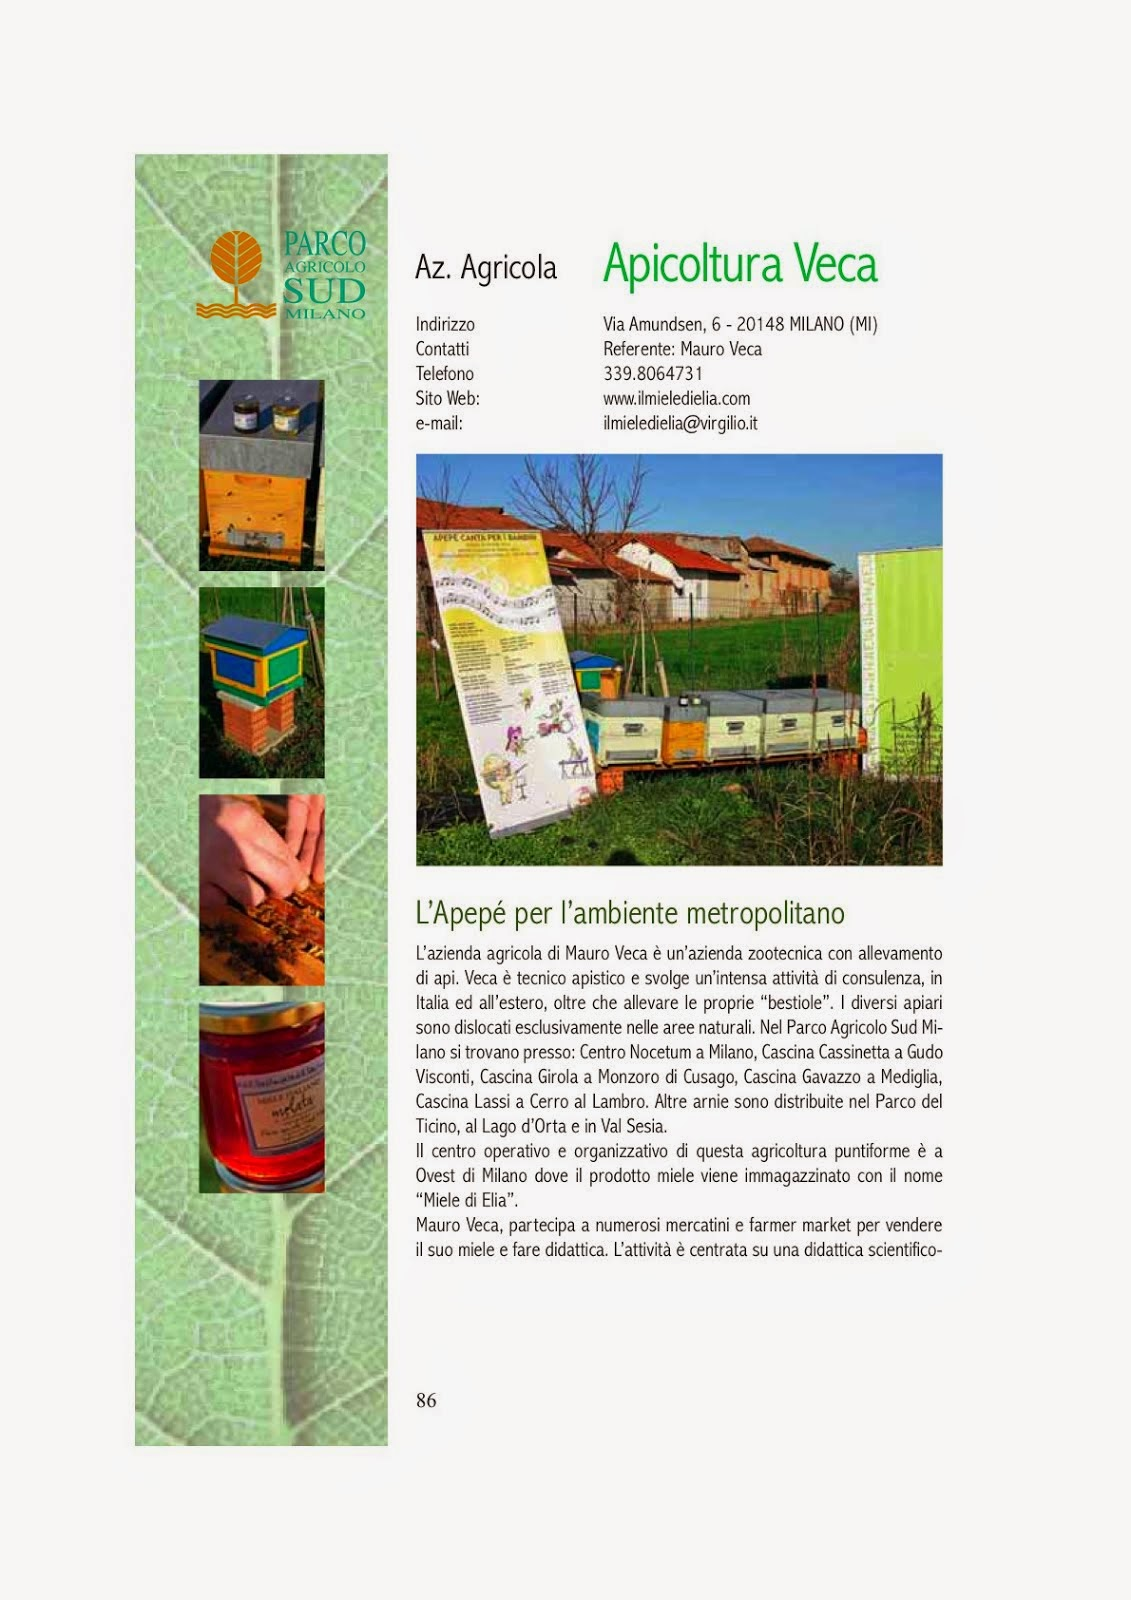 APICULTURA VECA